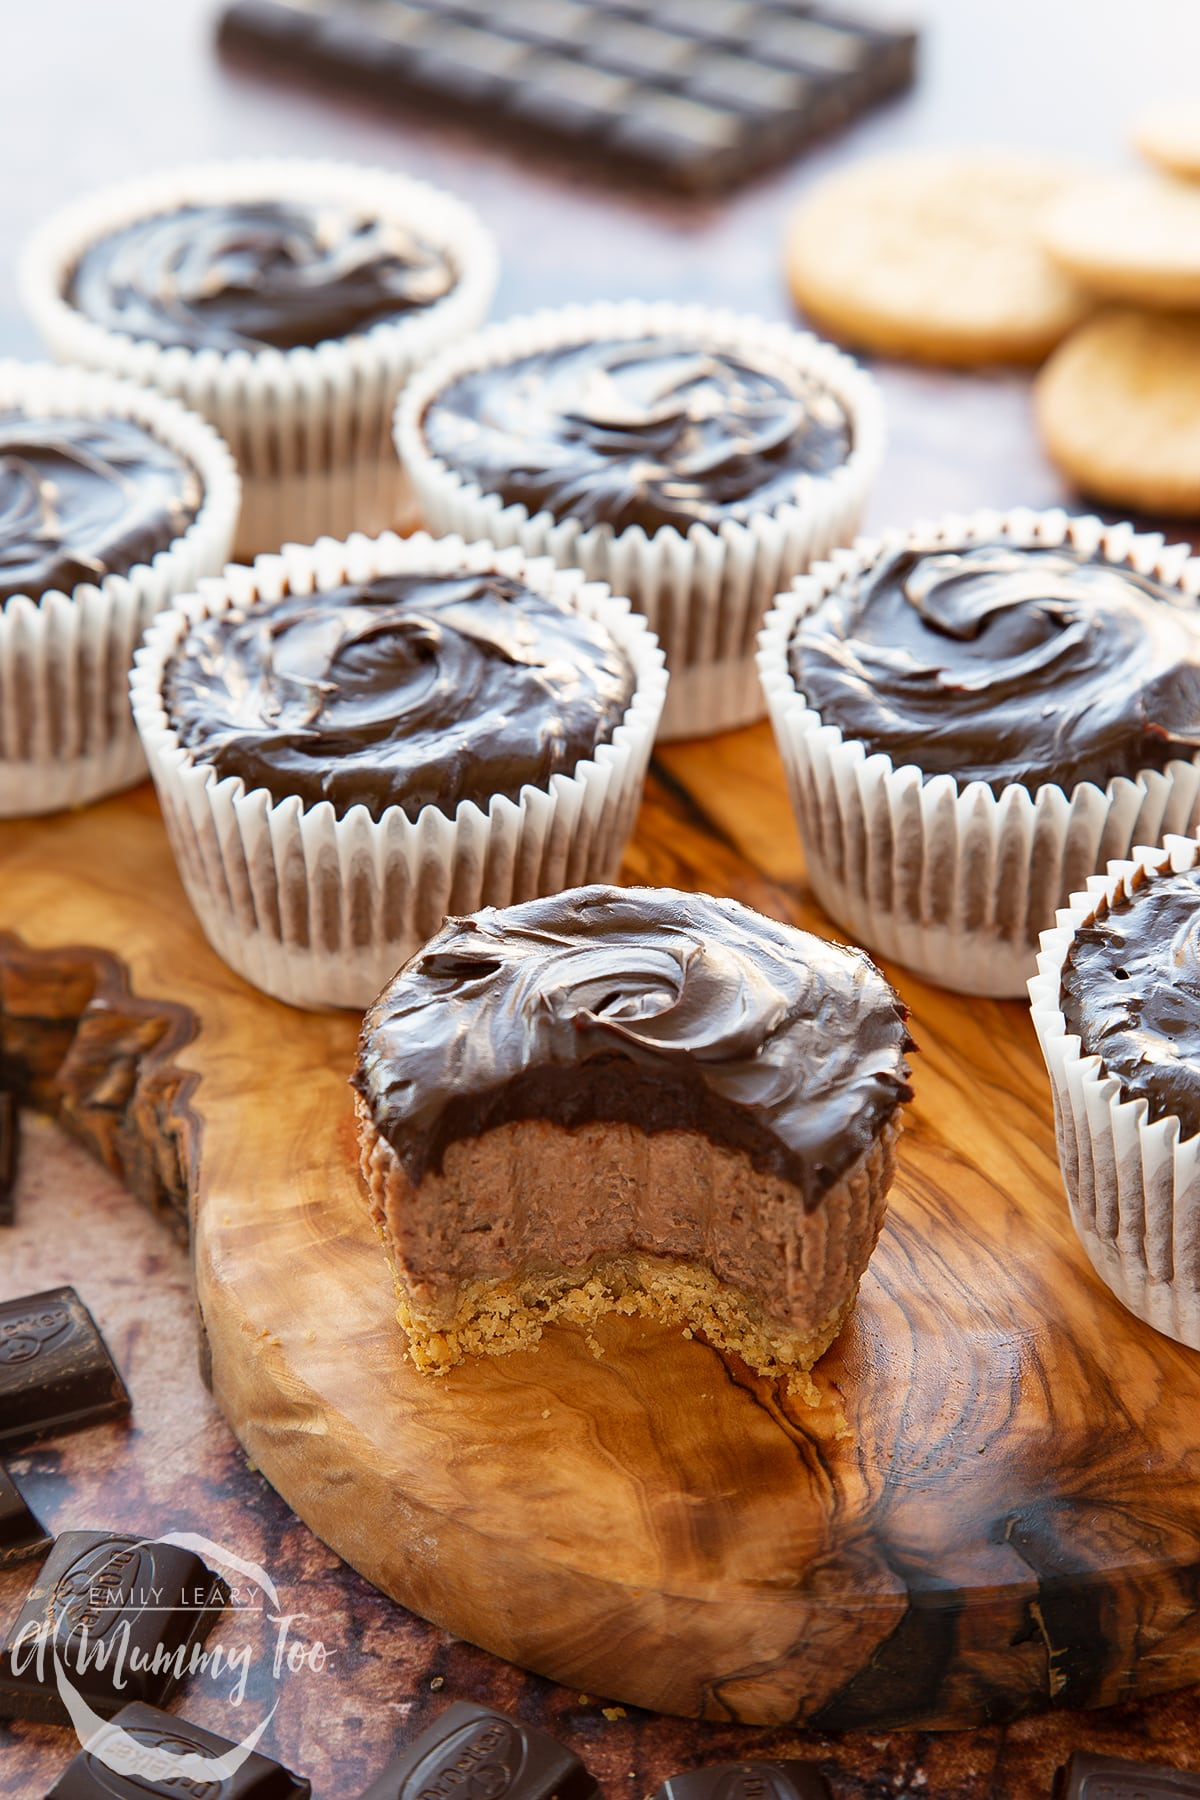 Chocolate cheesecake cupcakes in rows on an olive wood board. The one in the foreground has been unwrapped and has a bite out of it.